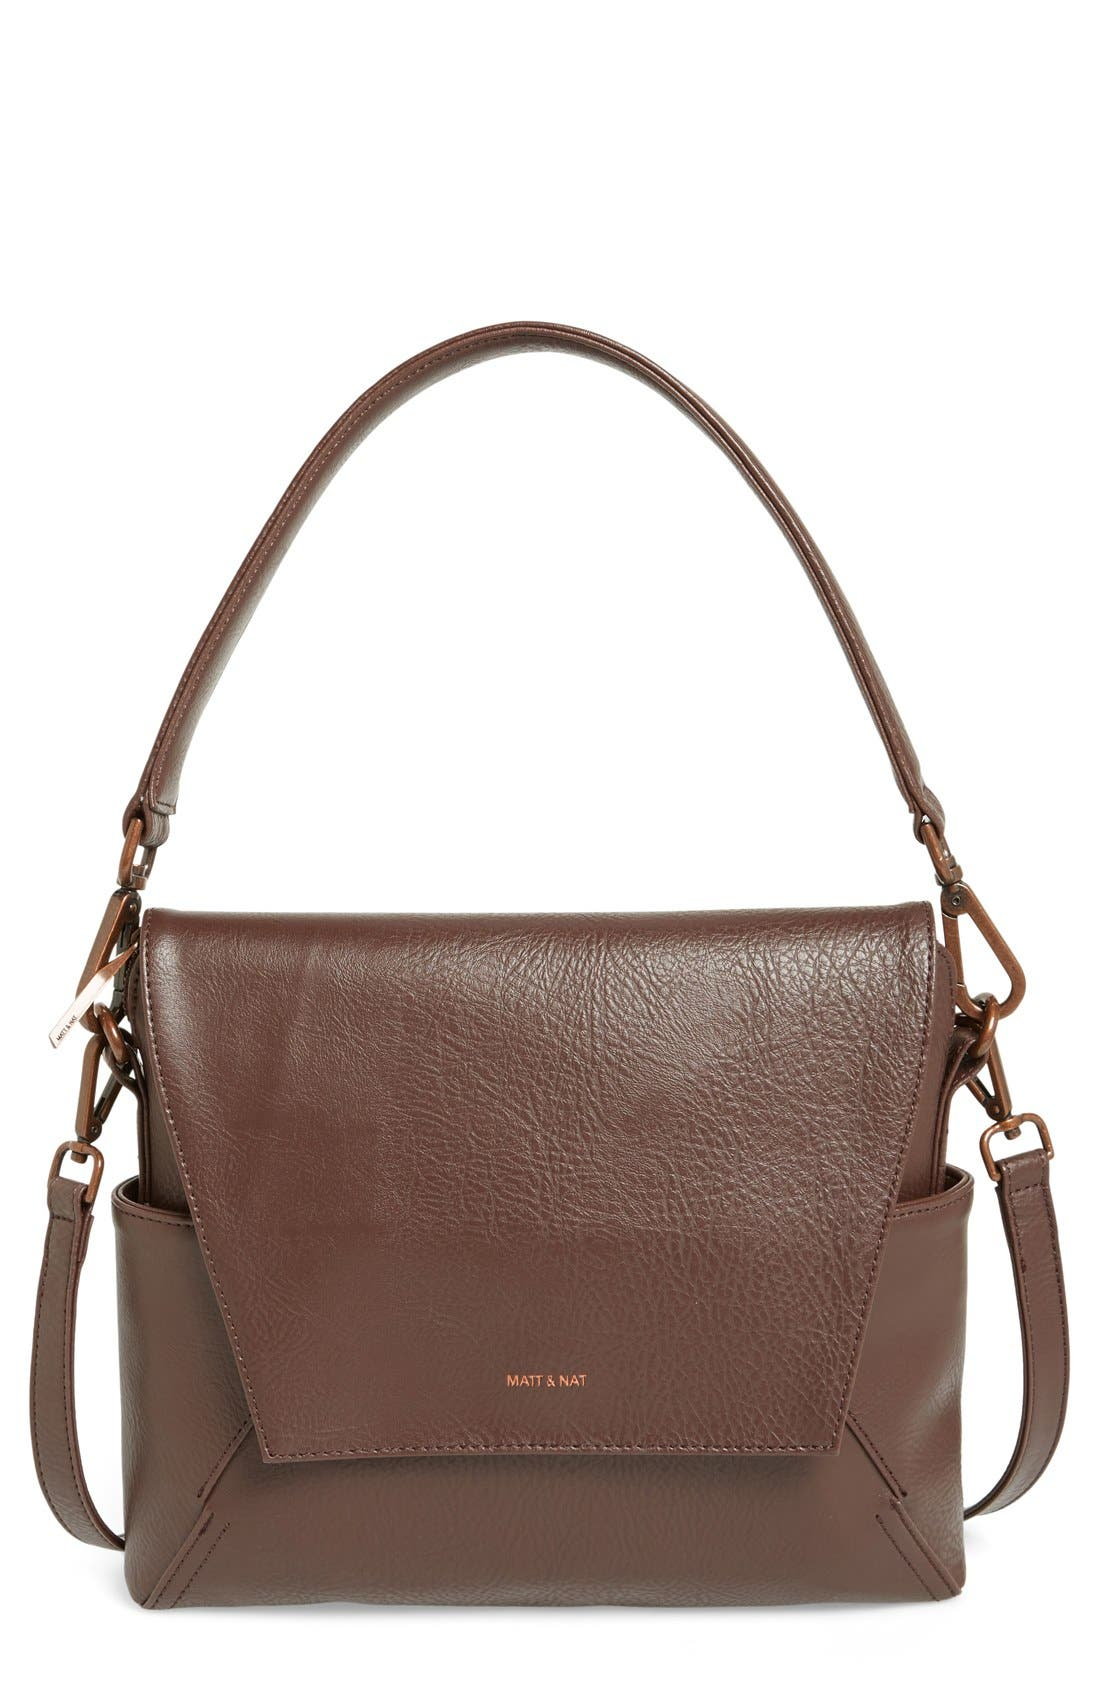 Alternate Image 1 Selected - Matt & Nat 'Minka' Faux Leather Shoulder Bag